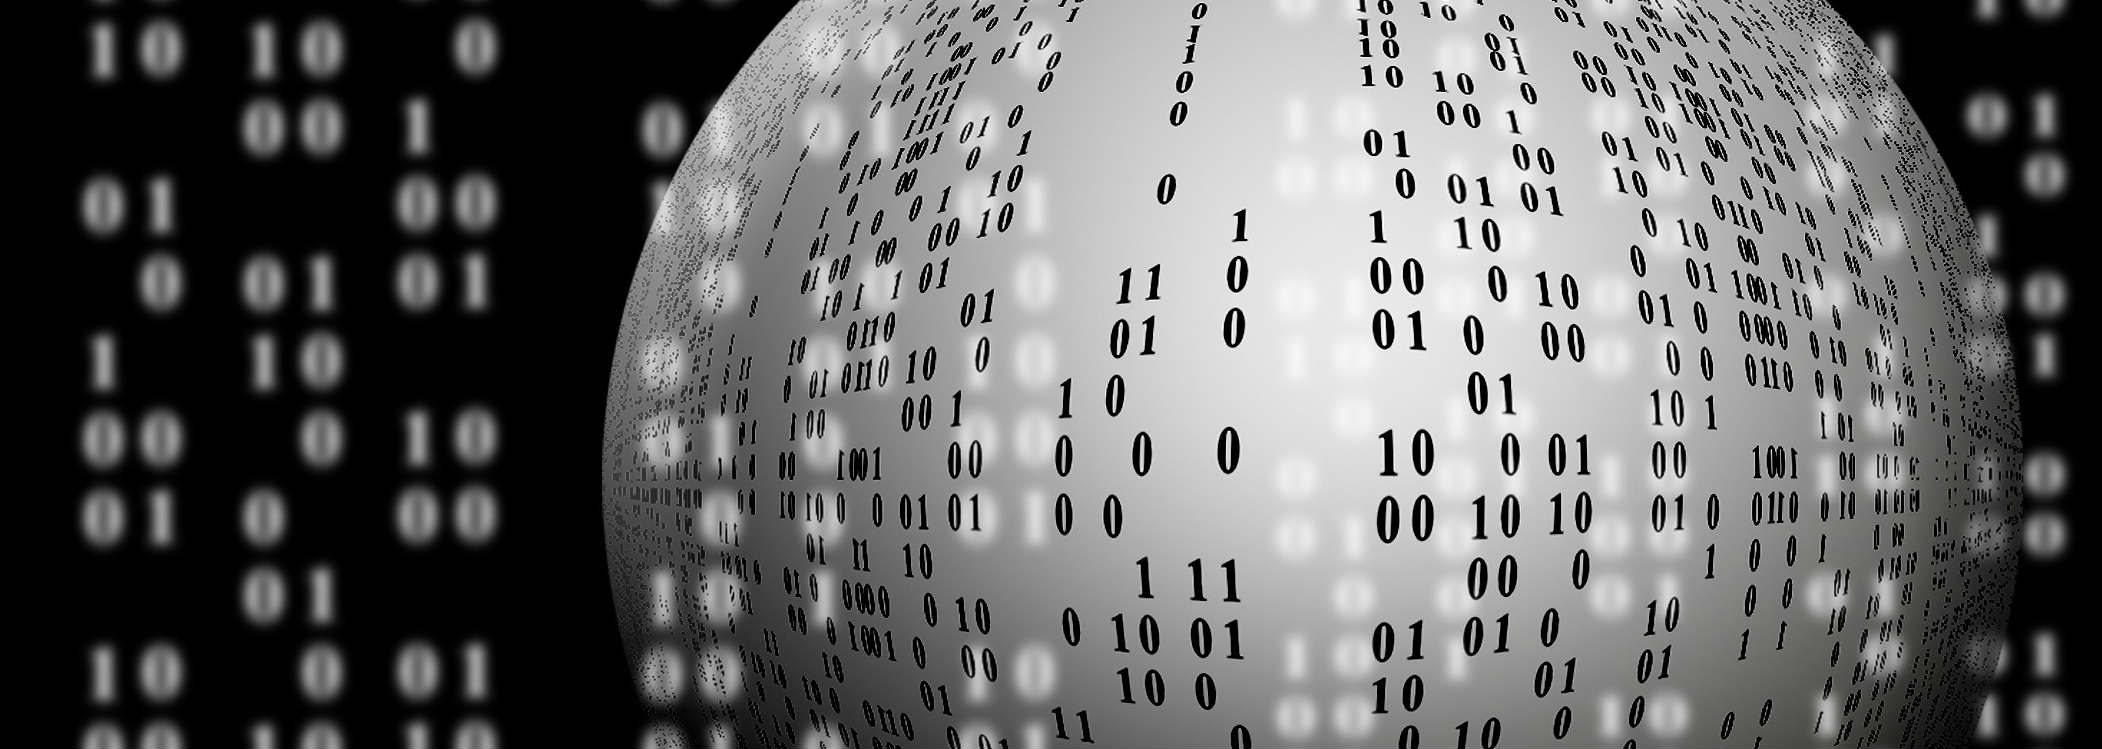 Picture of a sphere with binary code